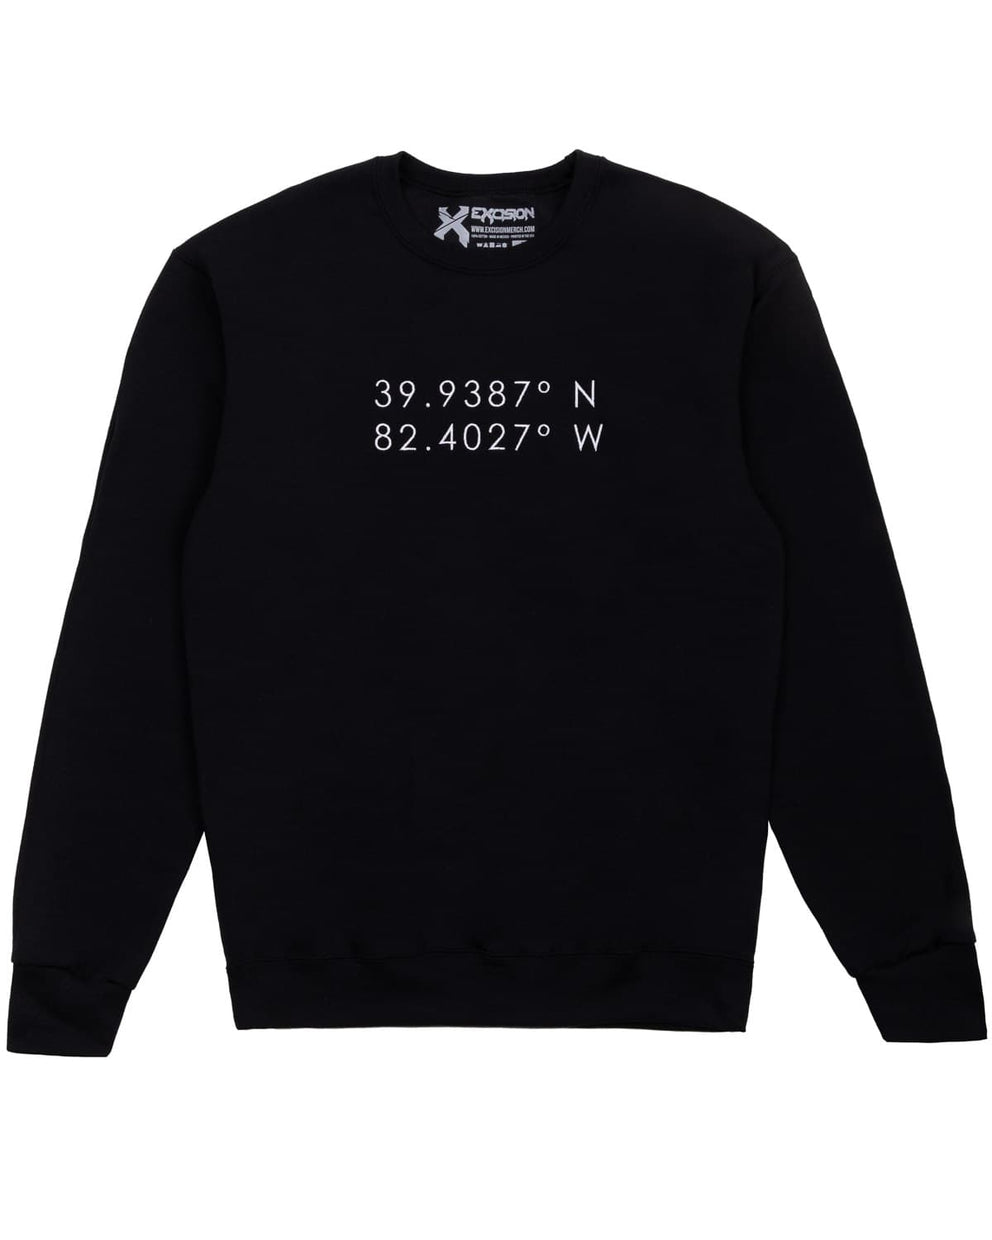 Lost Lands ' Coordinates' Embroidered Crewneck Sweatshirt - Black